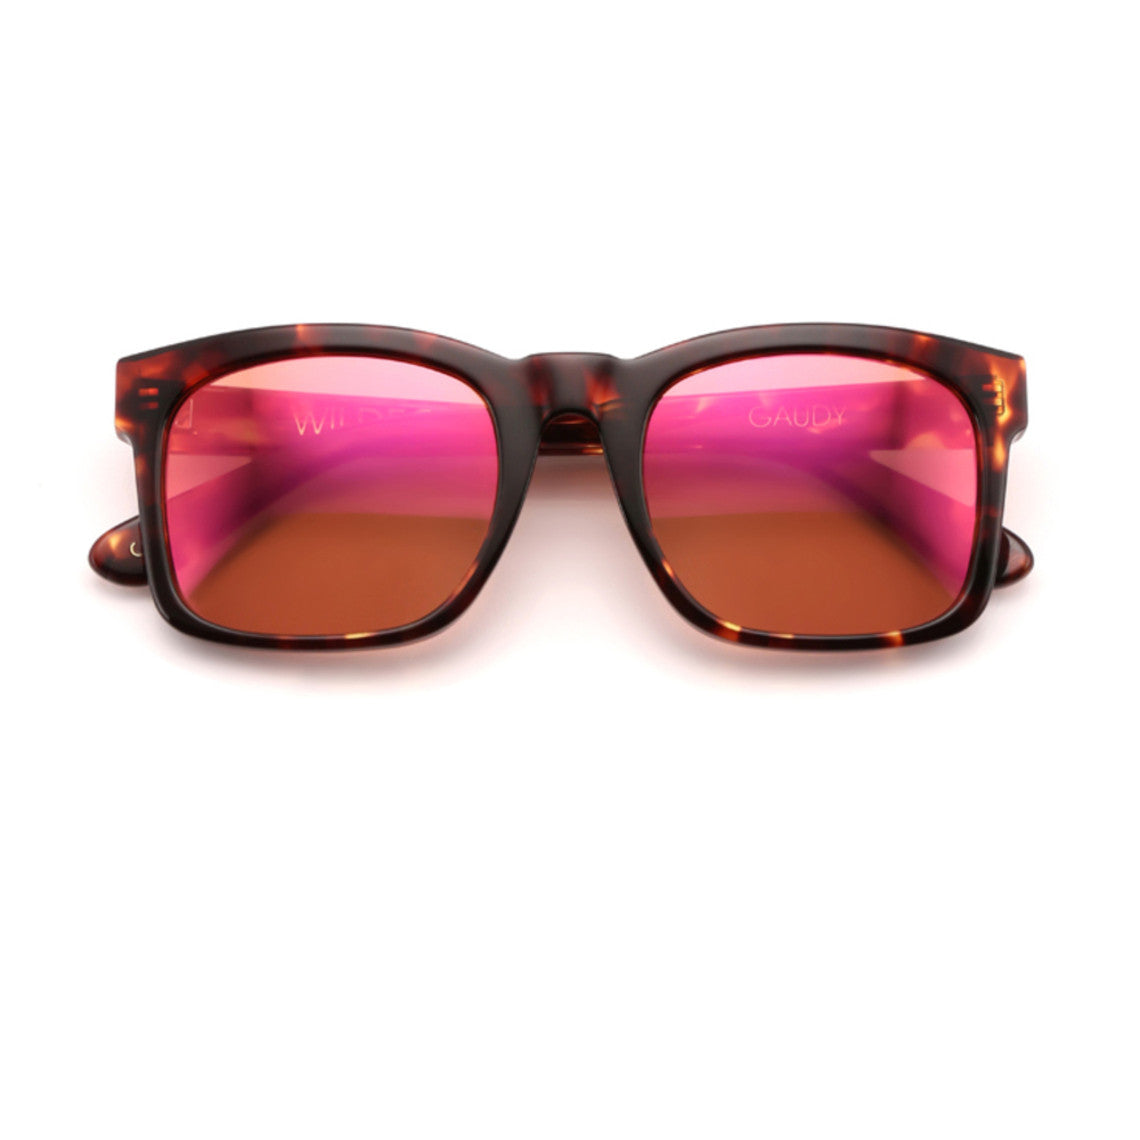 8aa71e23946 Gaudy Deluxe Sunglasses